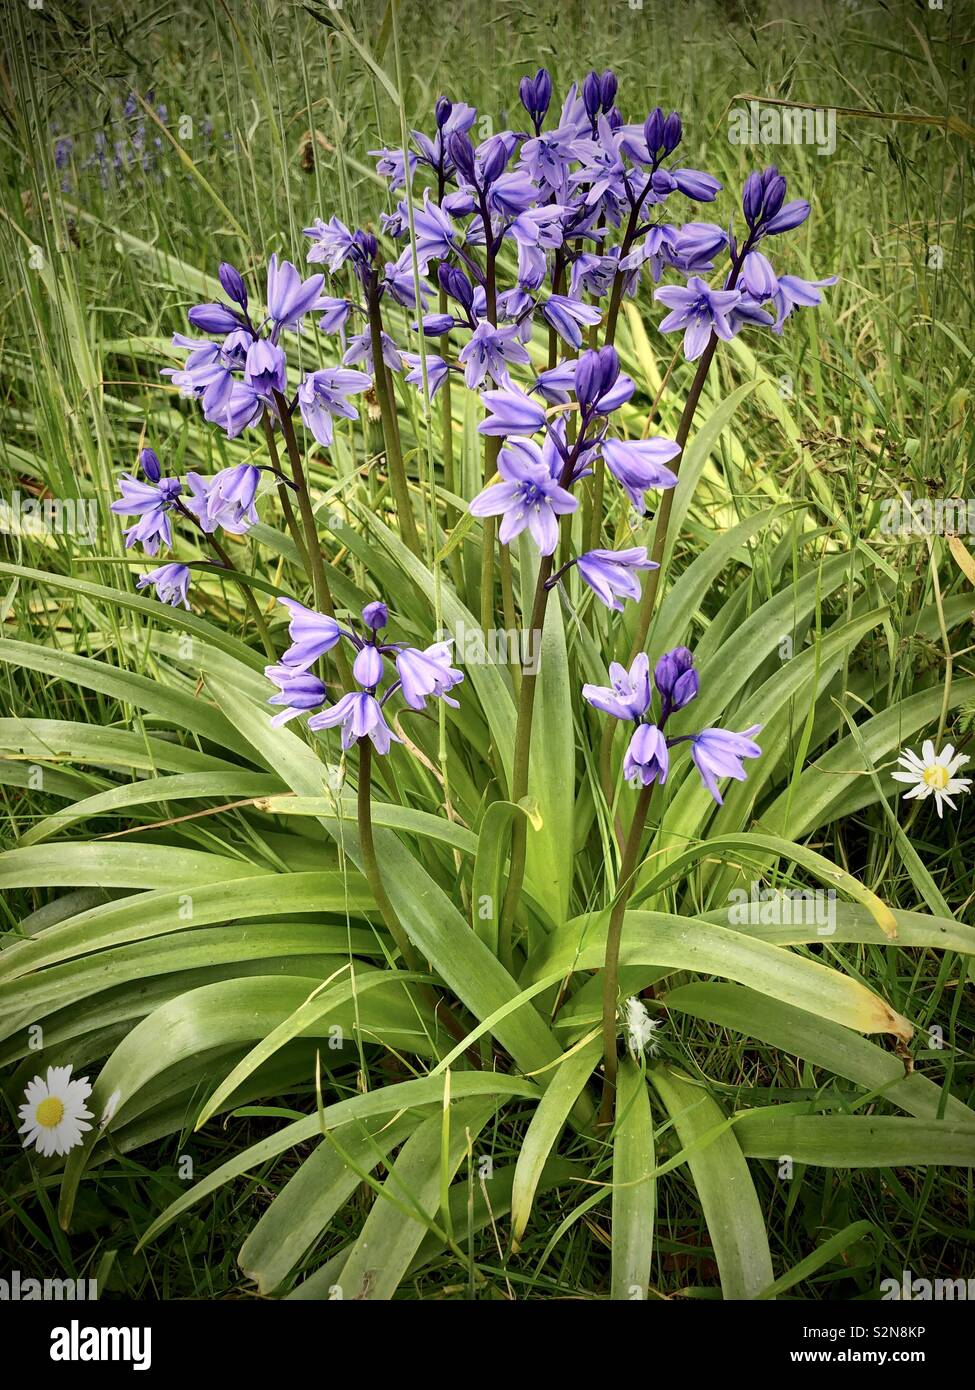 Hyacinthoides hispanica or Spanish bluebell growing in a shady spot - Stock Image